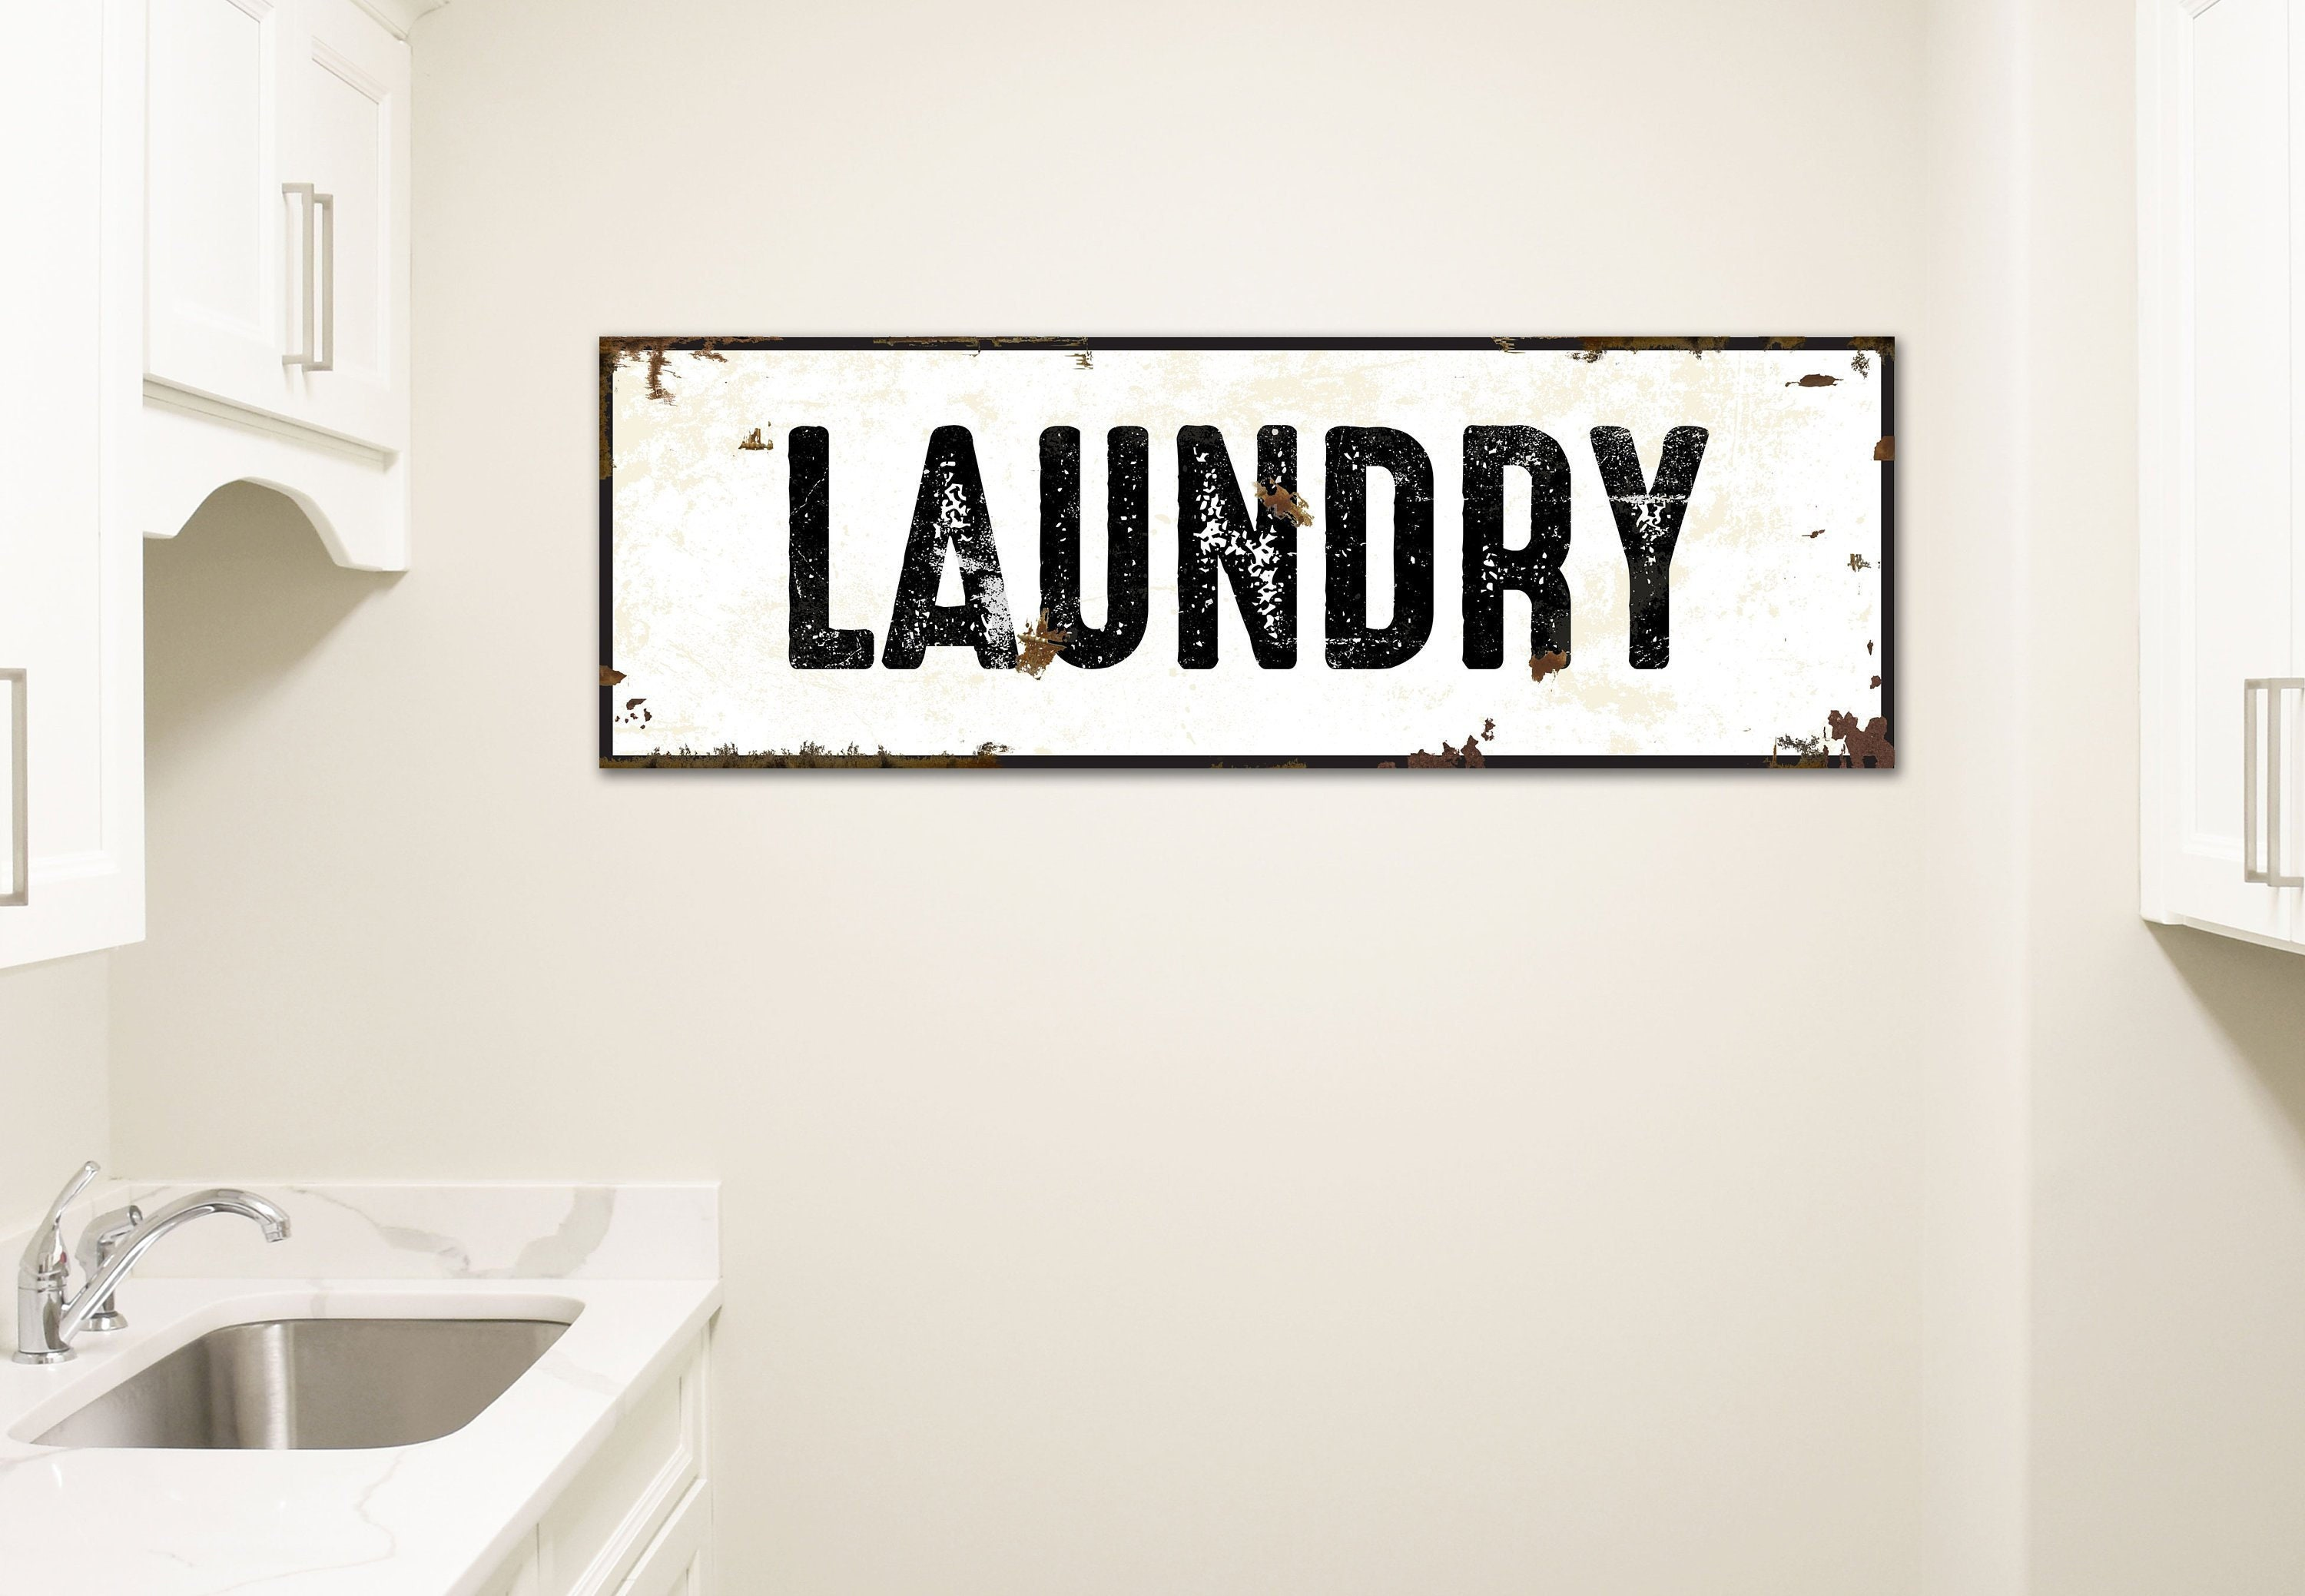 Laundry Room Decor Laundry Sign Farmhouse Sign Distressed Decor Rustic Laundry Room Sign Modern Farmhouse Decor Mud Room Art Wash Dry